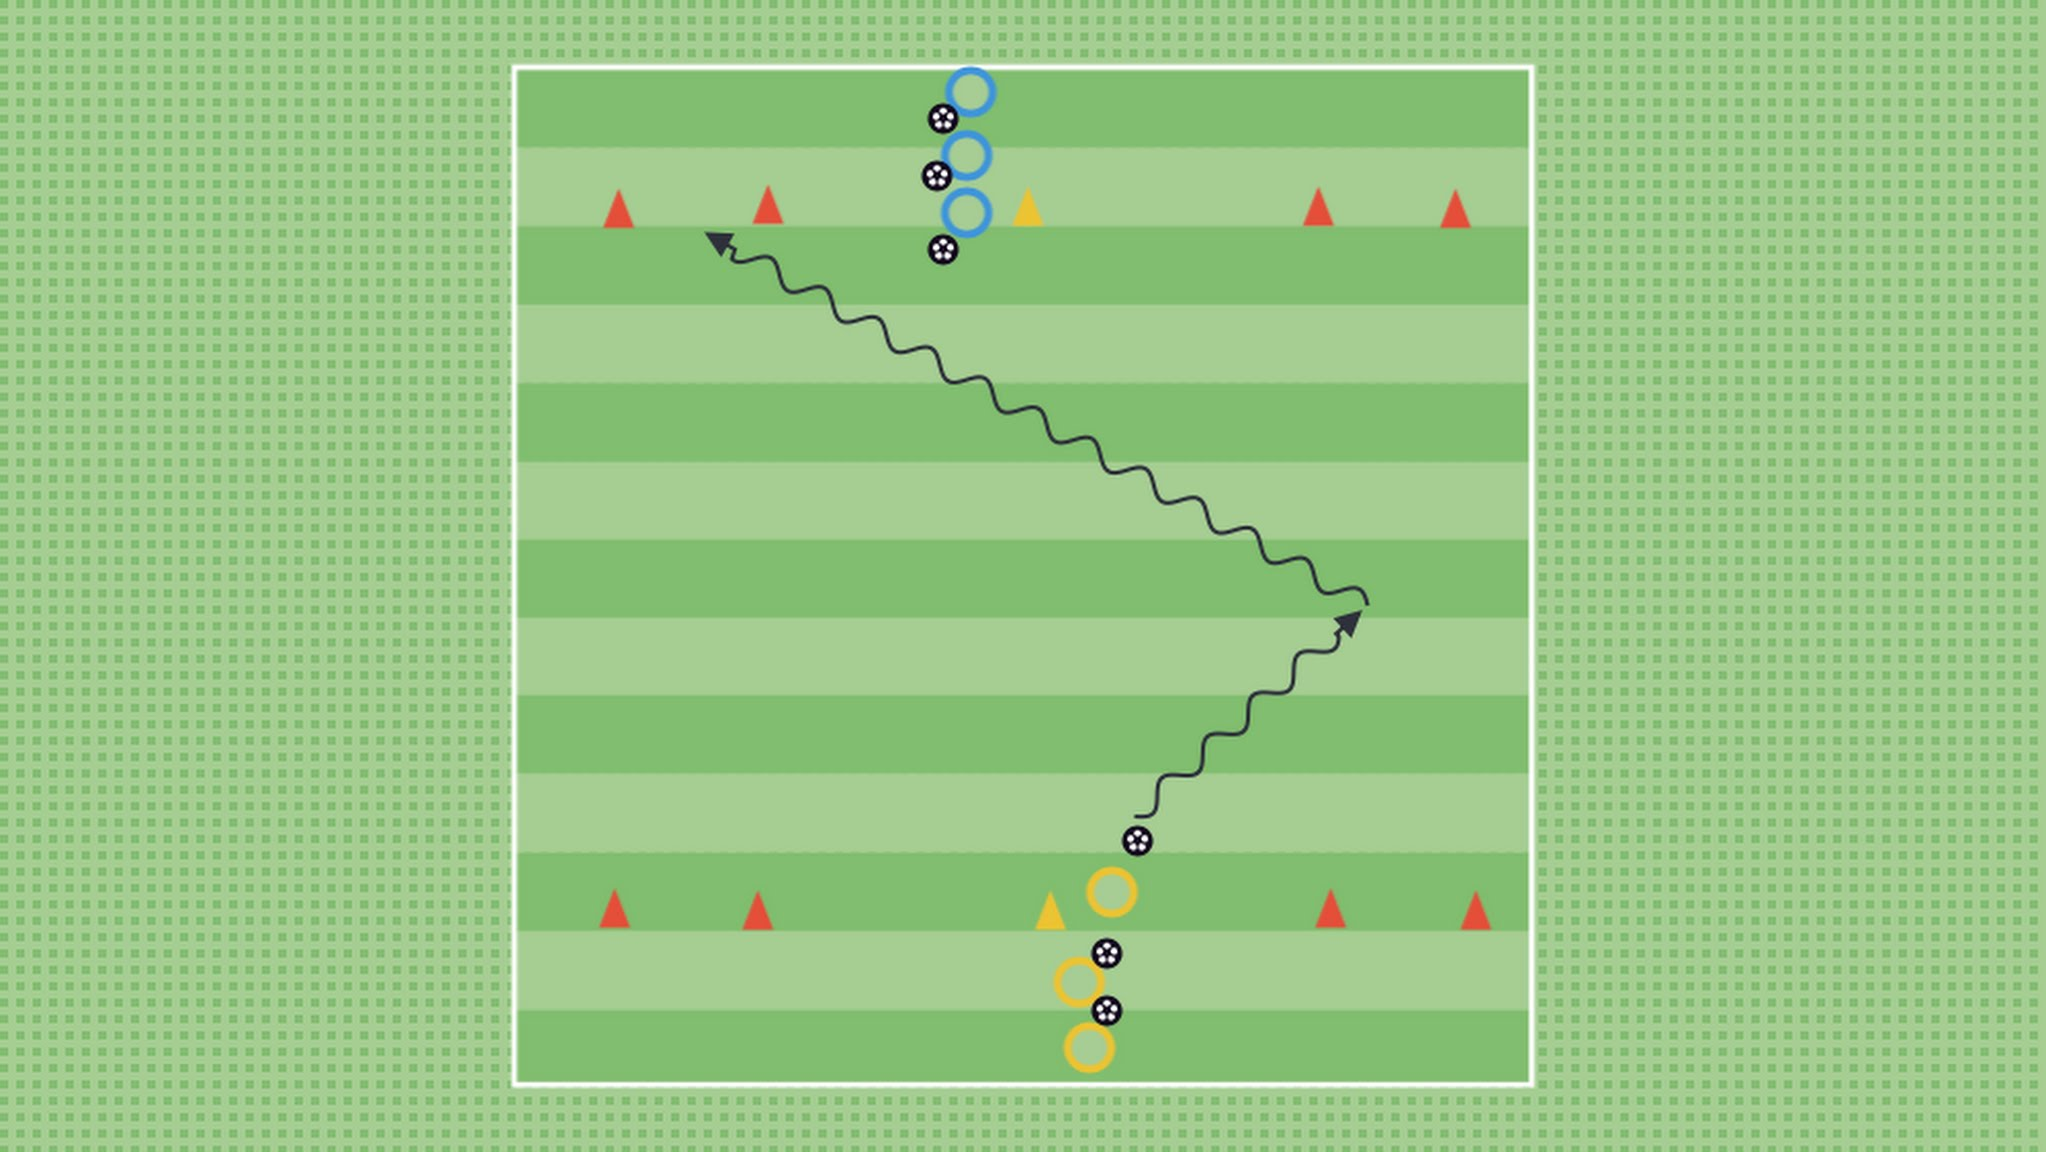 The game starts on eye contact with the other team. Yellow and blue both drive out and perform the 'Ronaldo Chop' before finishing in the red gate on the opposite side.